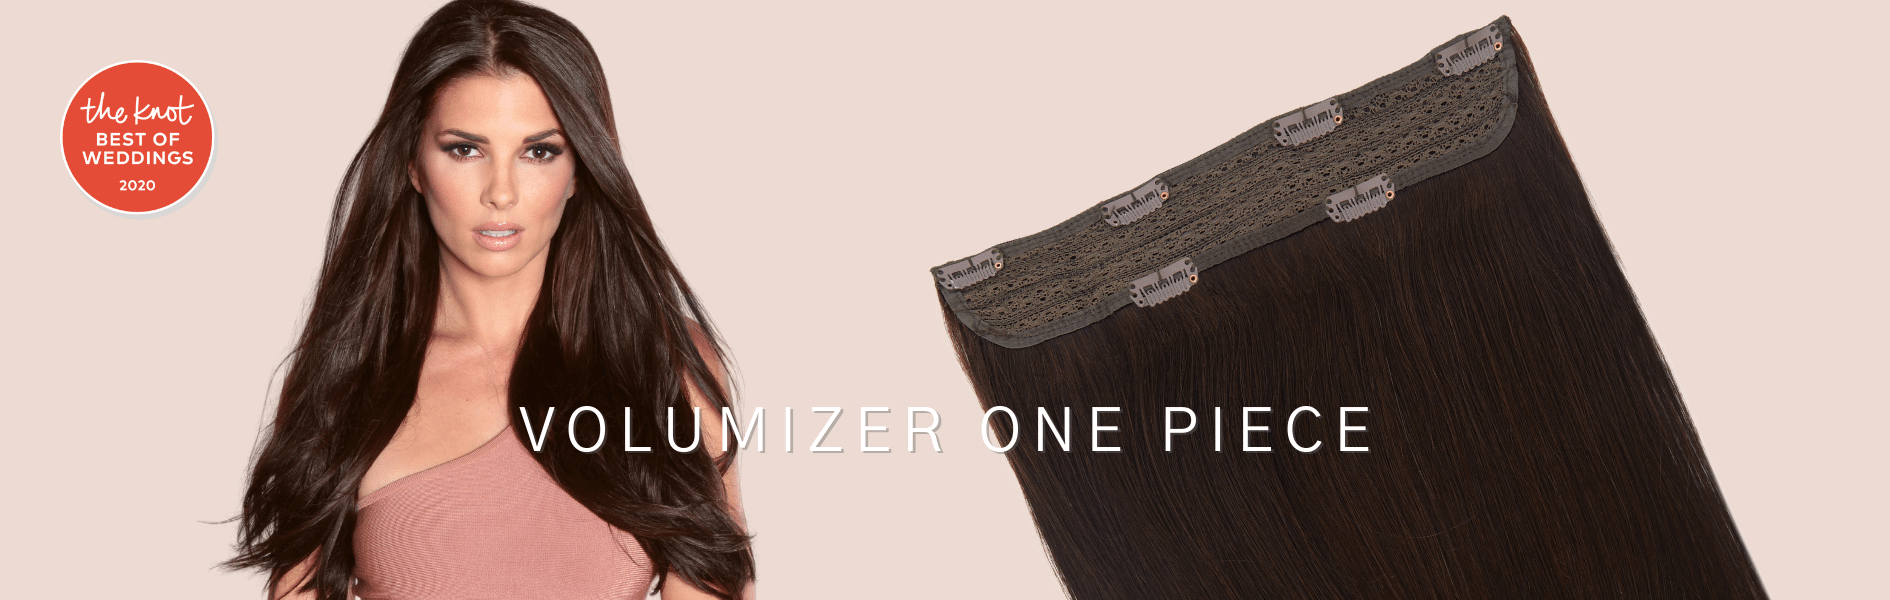 volumizer-one-piece-clip-in-extensions-cashmere-hair1.png